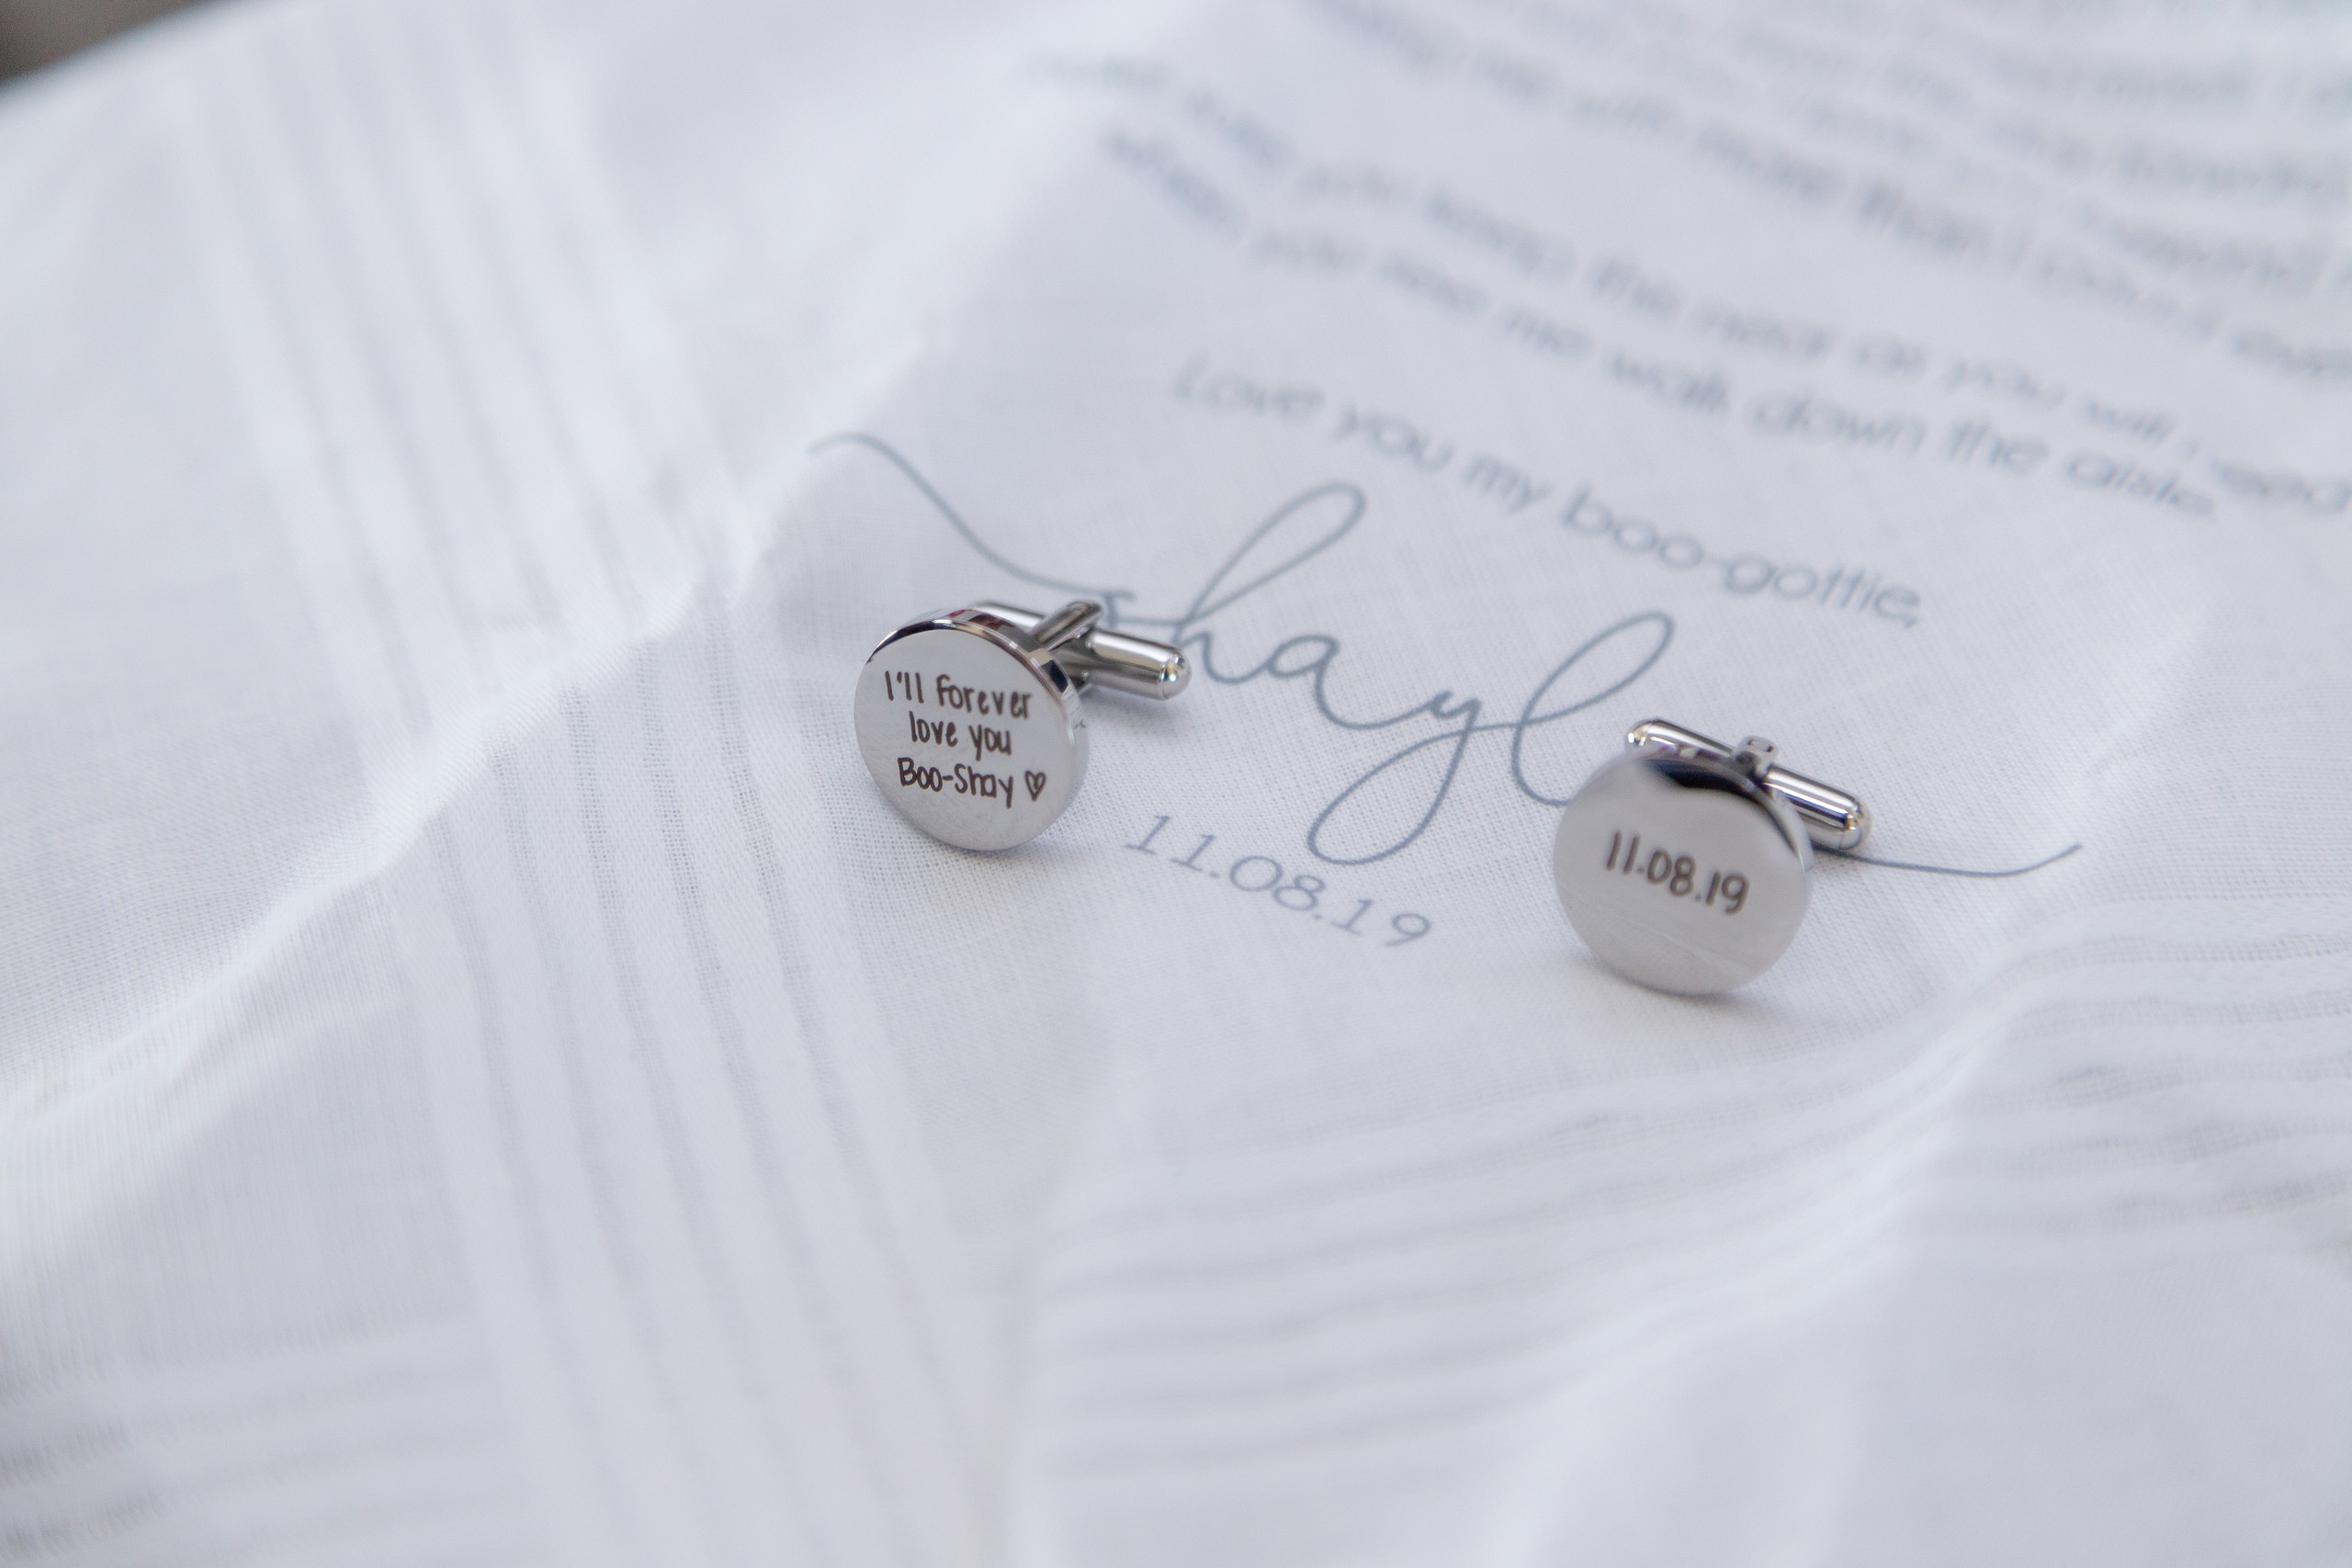 The bride's custom gifts to the groom before the wedding at the Hilton Main in Norfolk, Virginia.